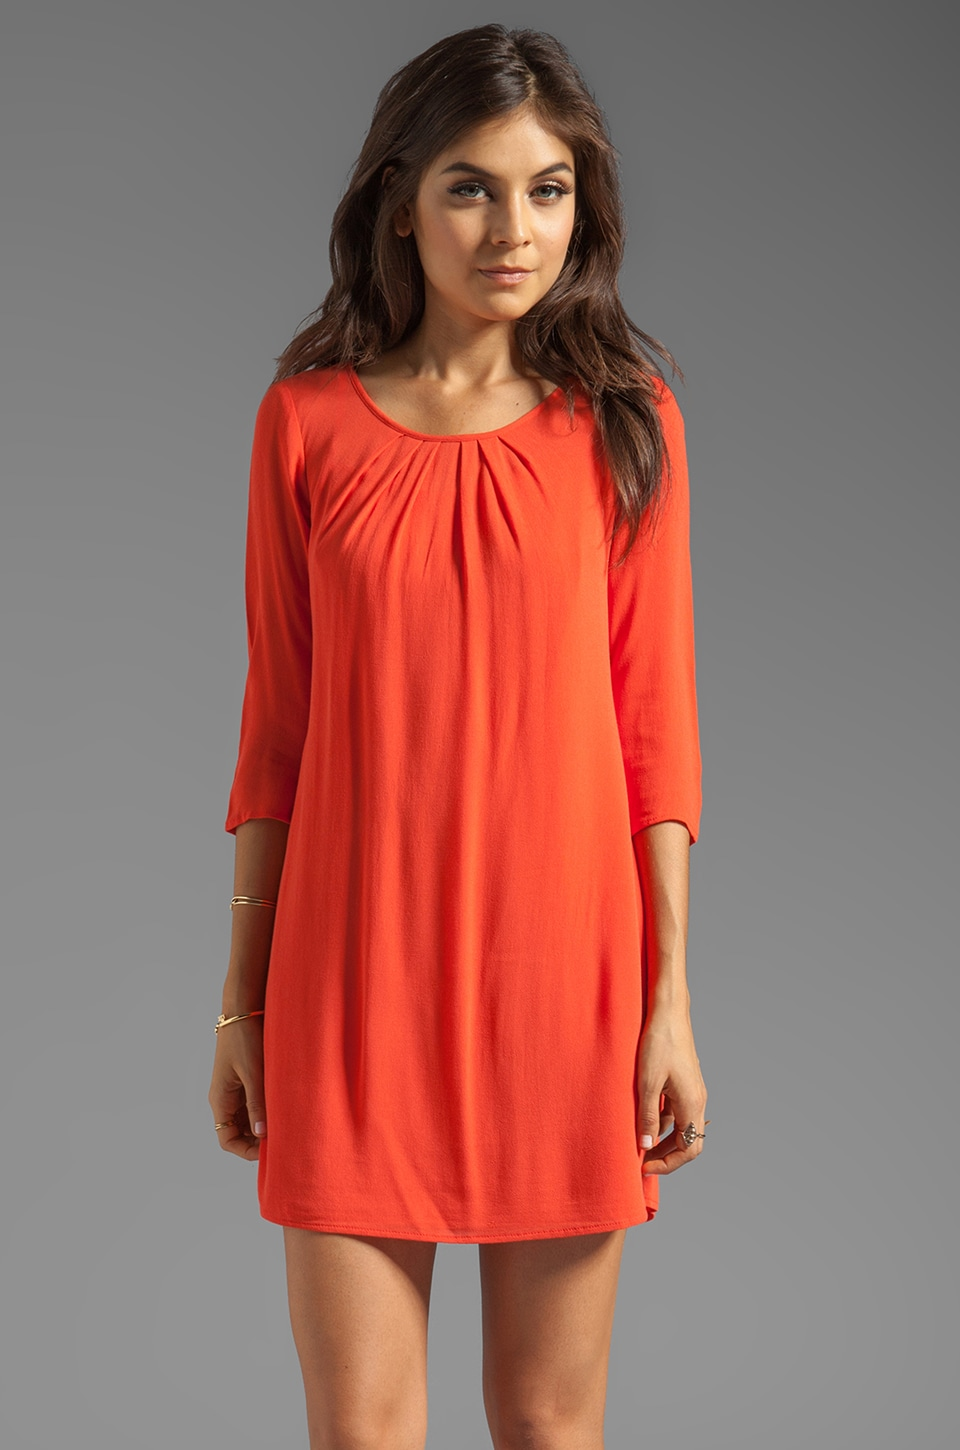 Ella Moss Stella Dress in Fire